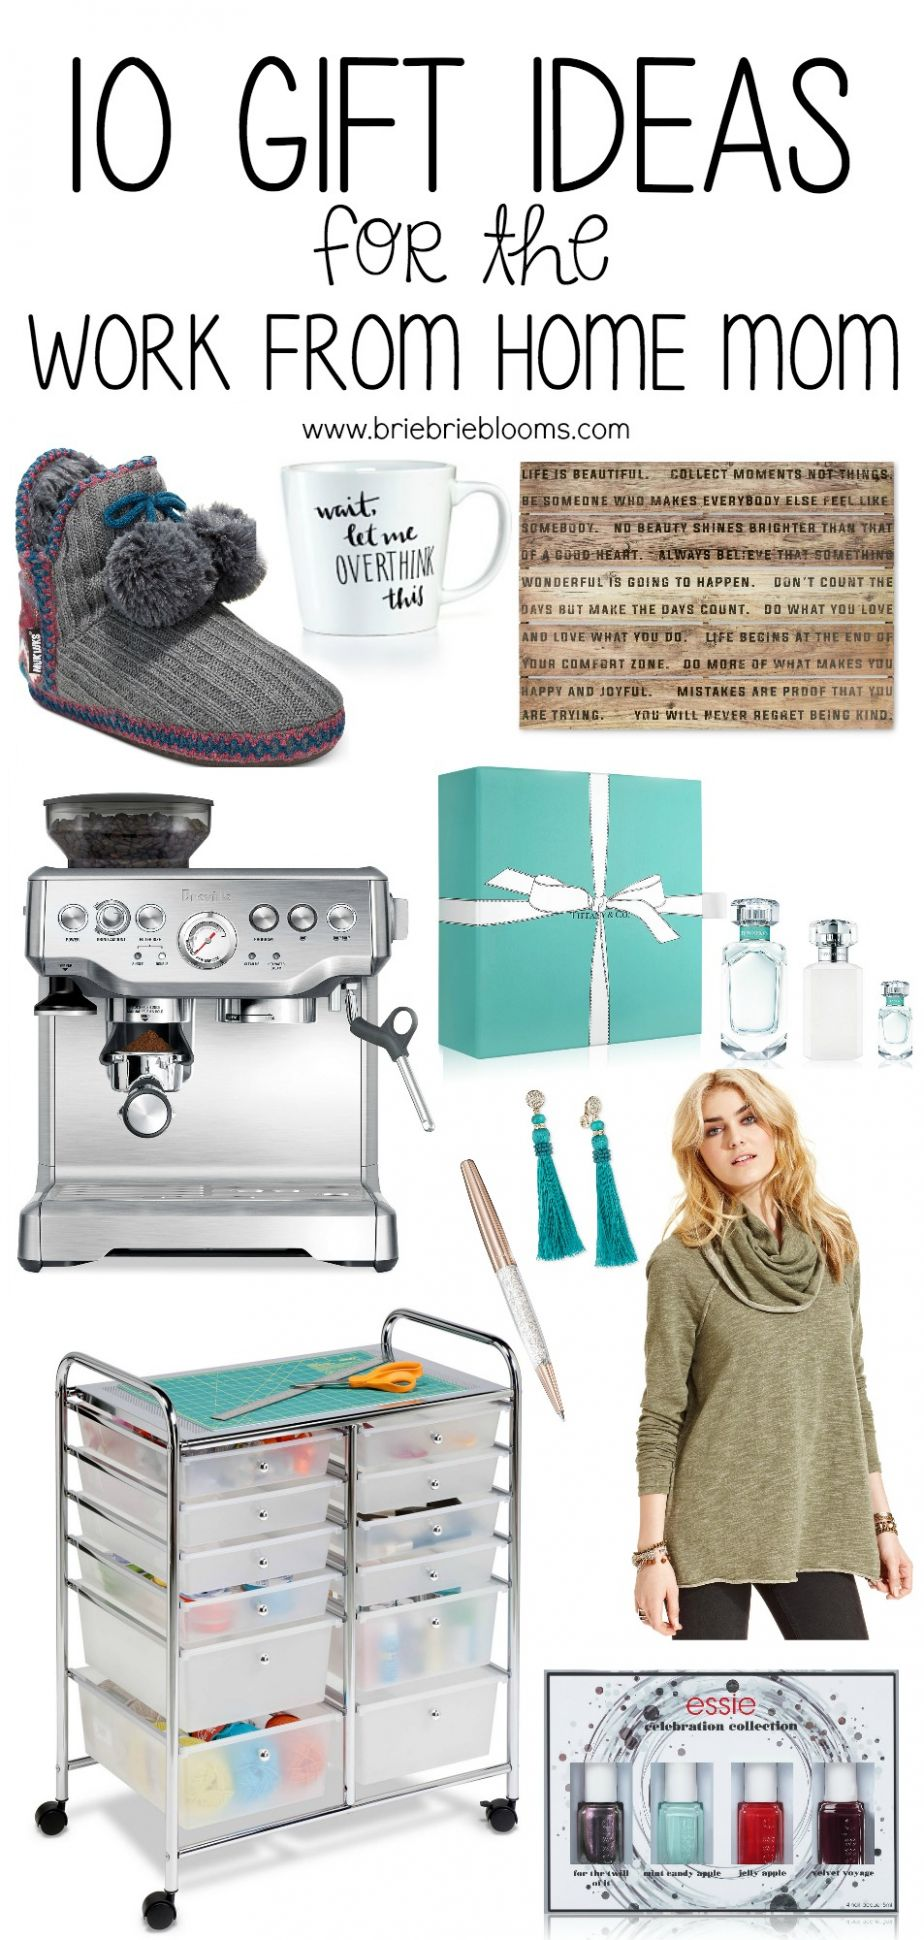 9 Gift Ideas for the Work from Home Mom - Brie Brie Blooms - home office gift ideas